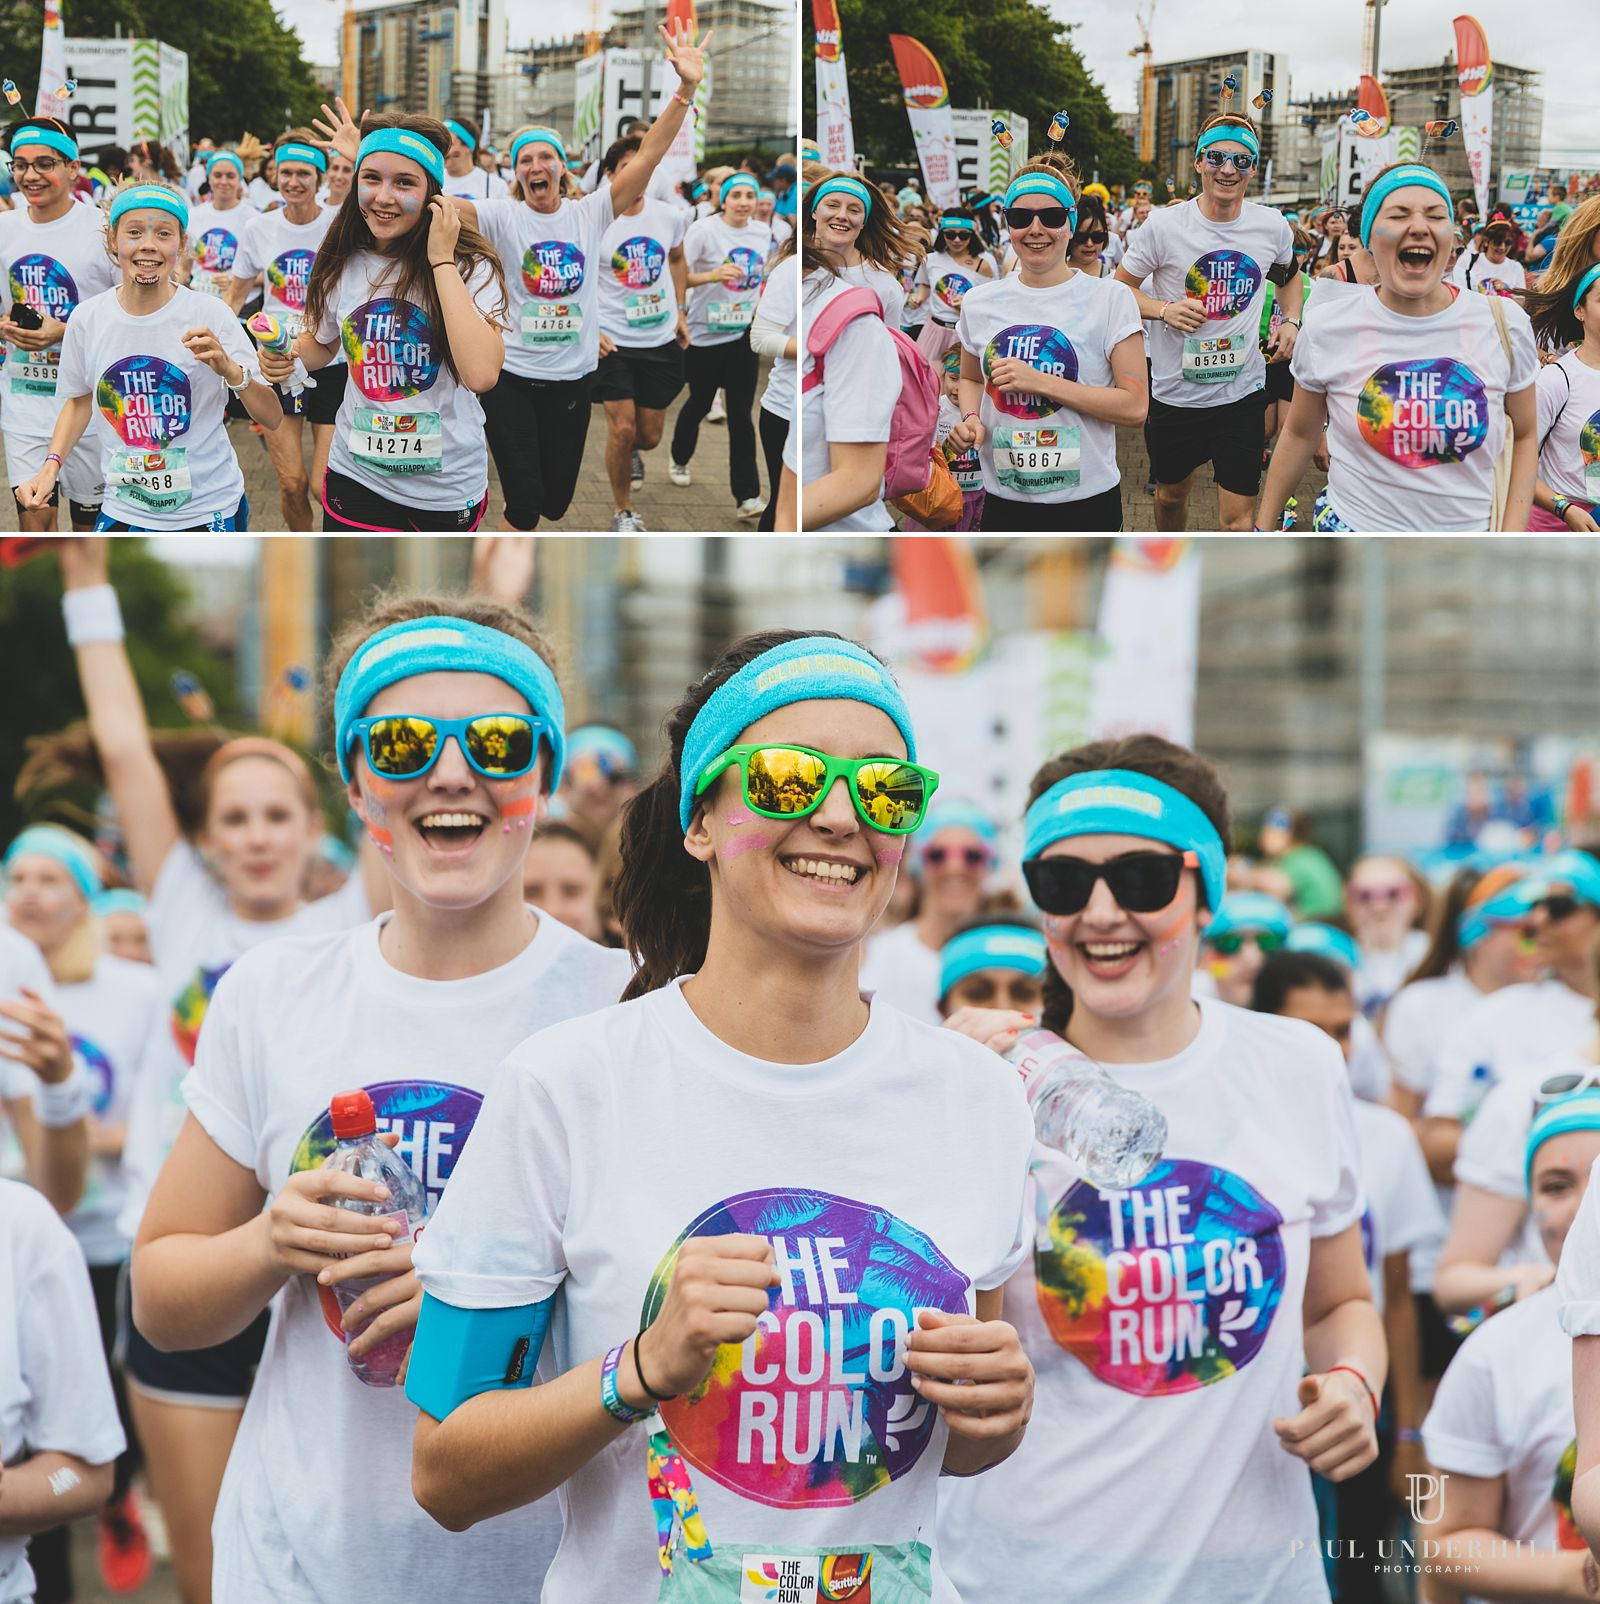 The Color Run event London